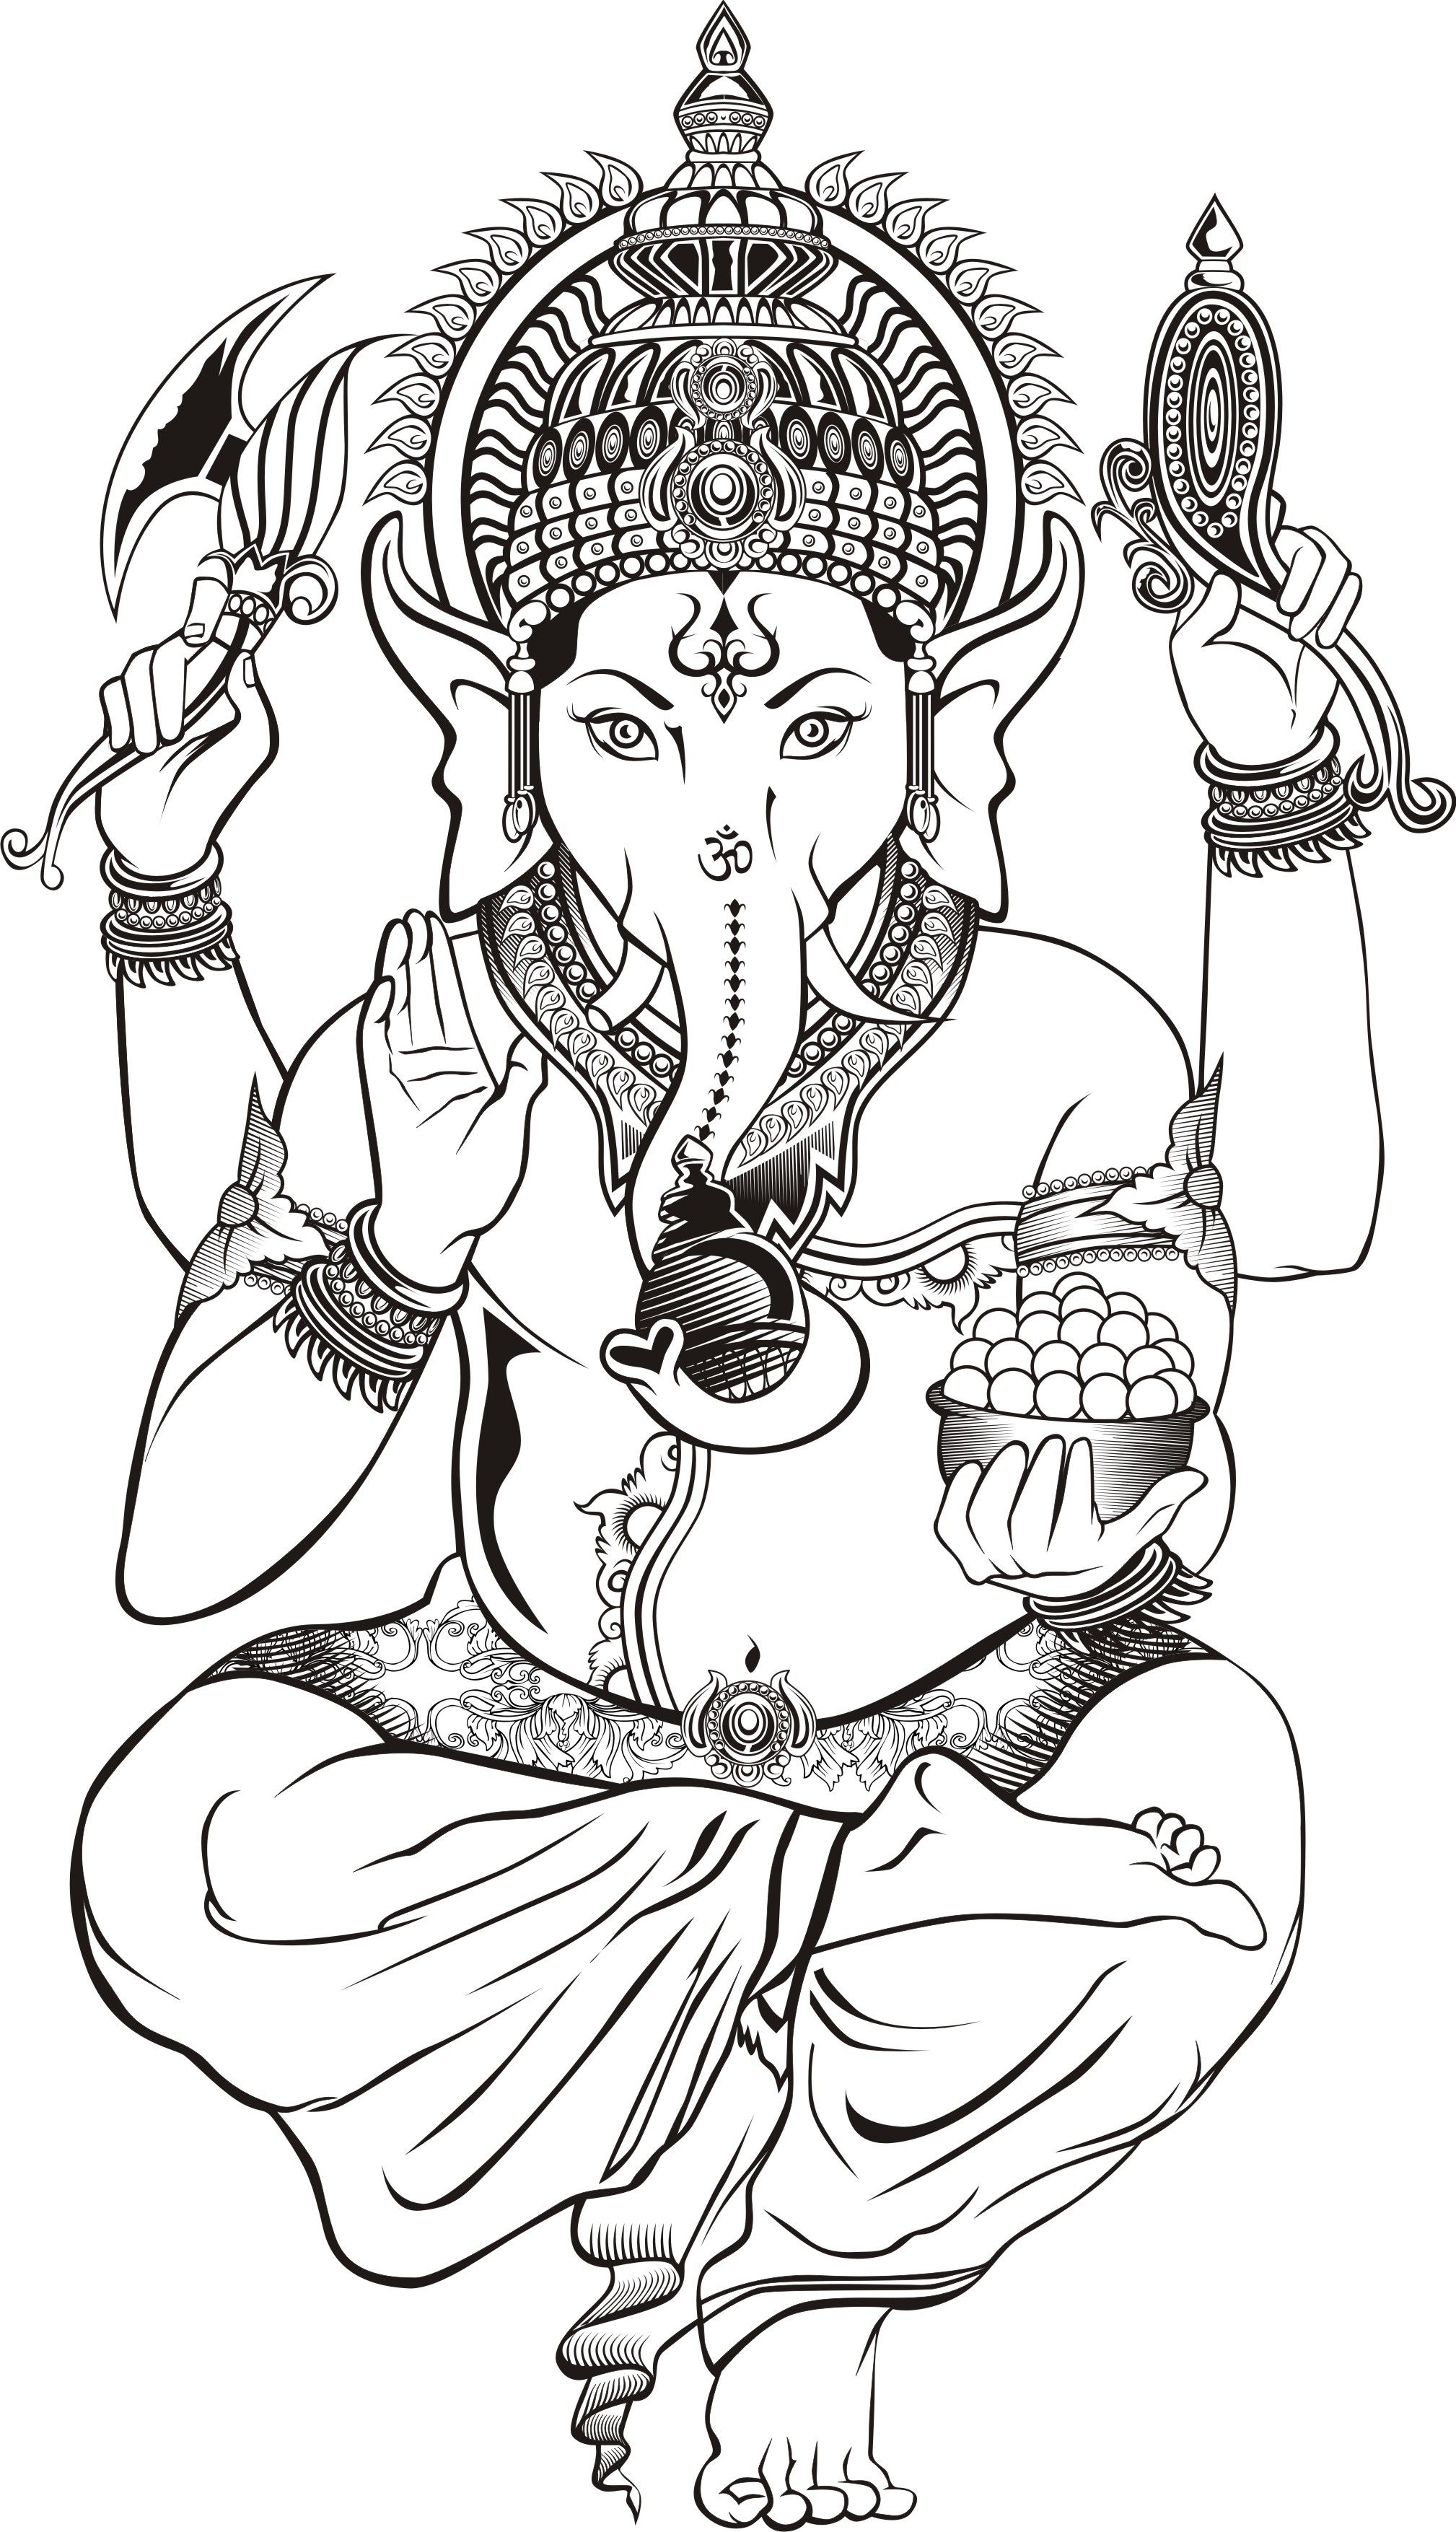 Gaja Hindu Elephant coloring page - Google Search | Adult coloring ...